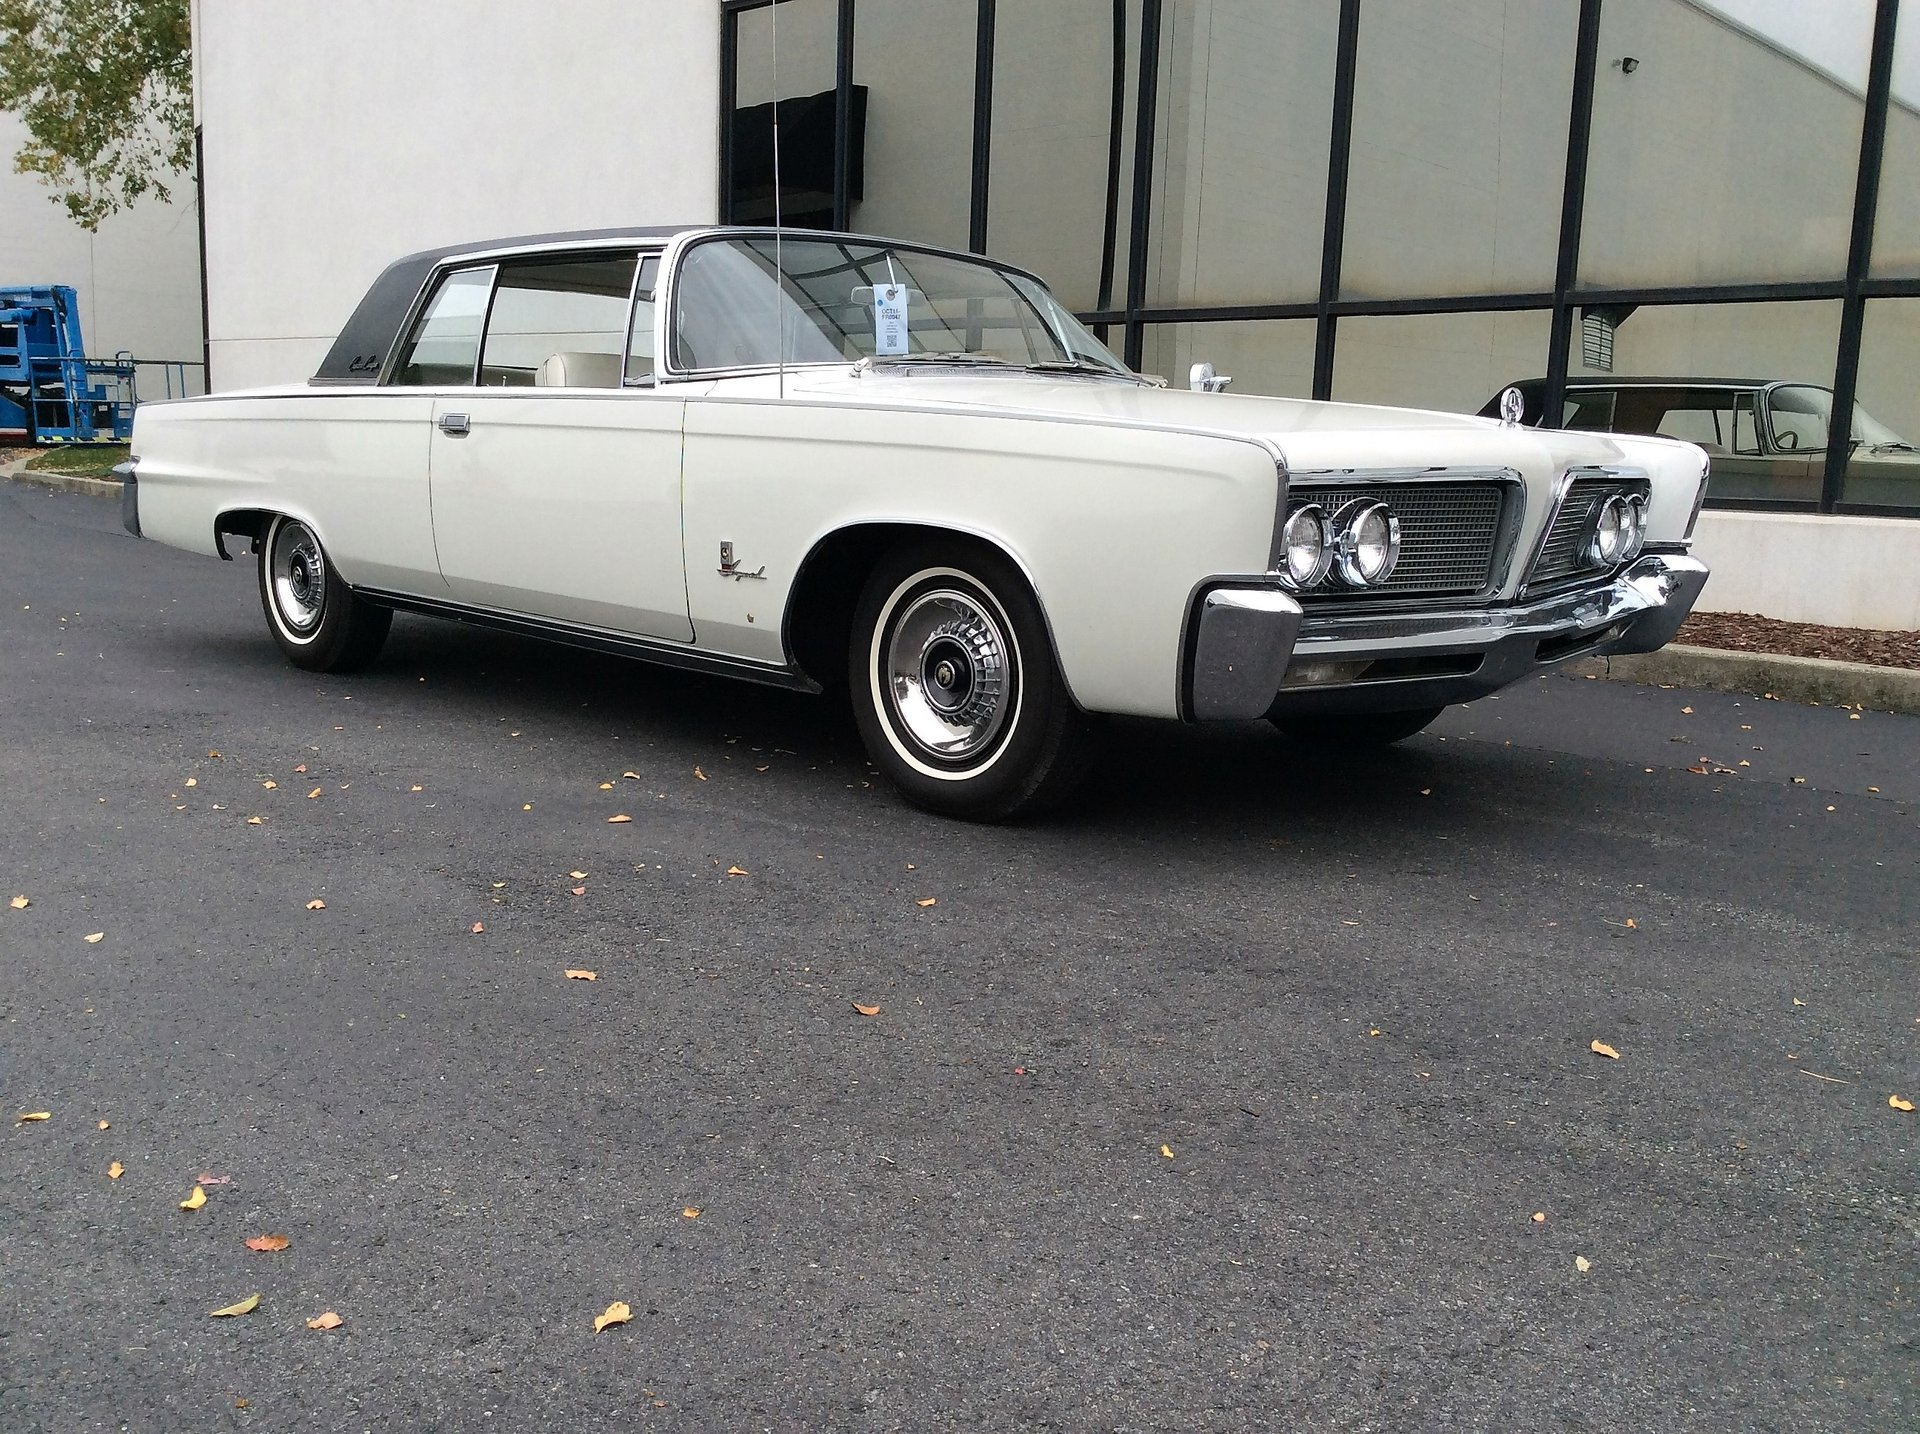 1964 chrysler imperial crown cpe